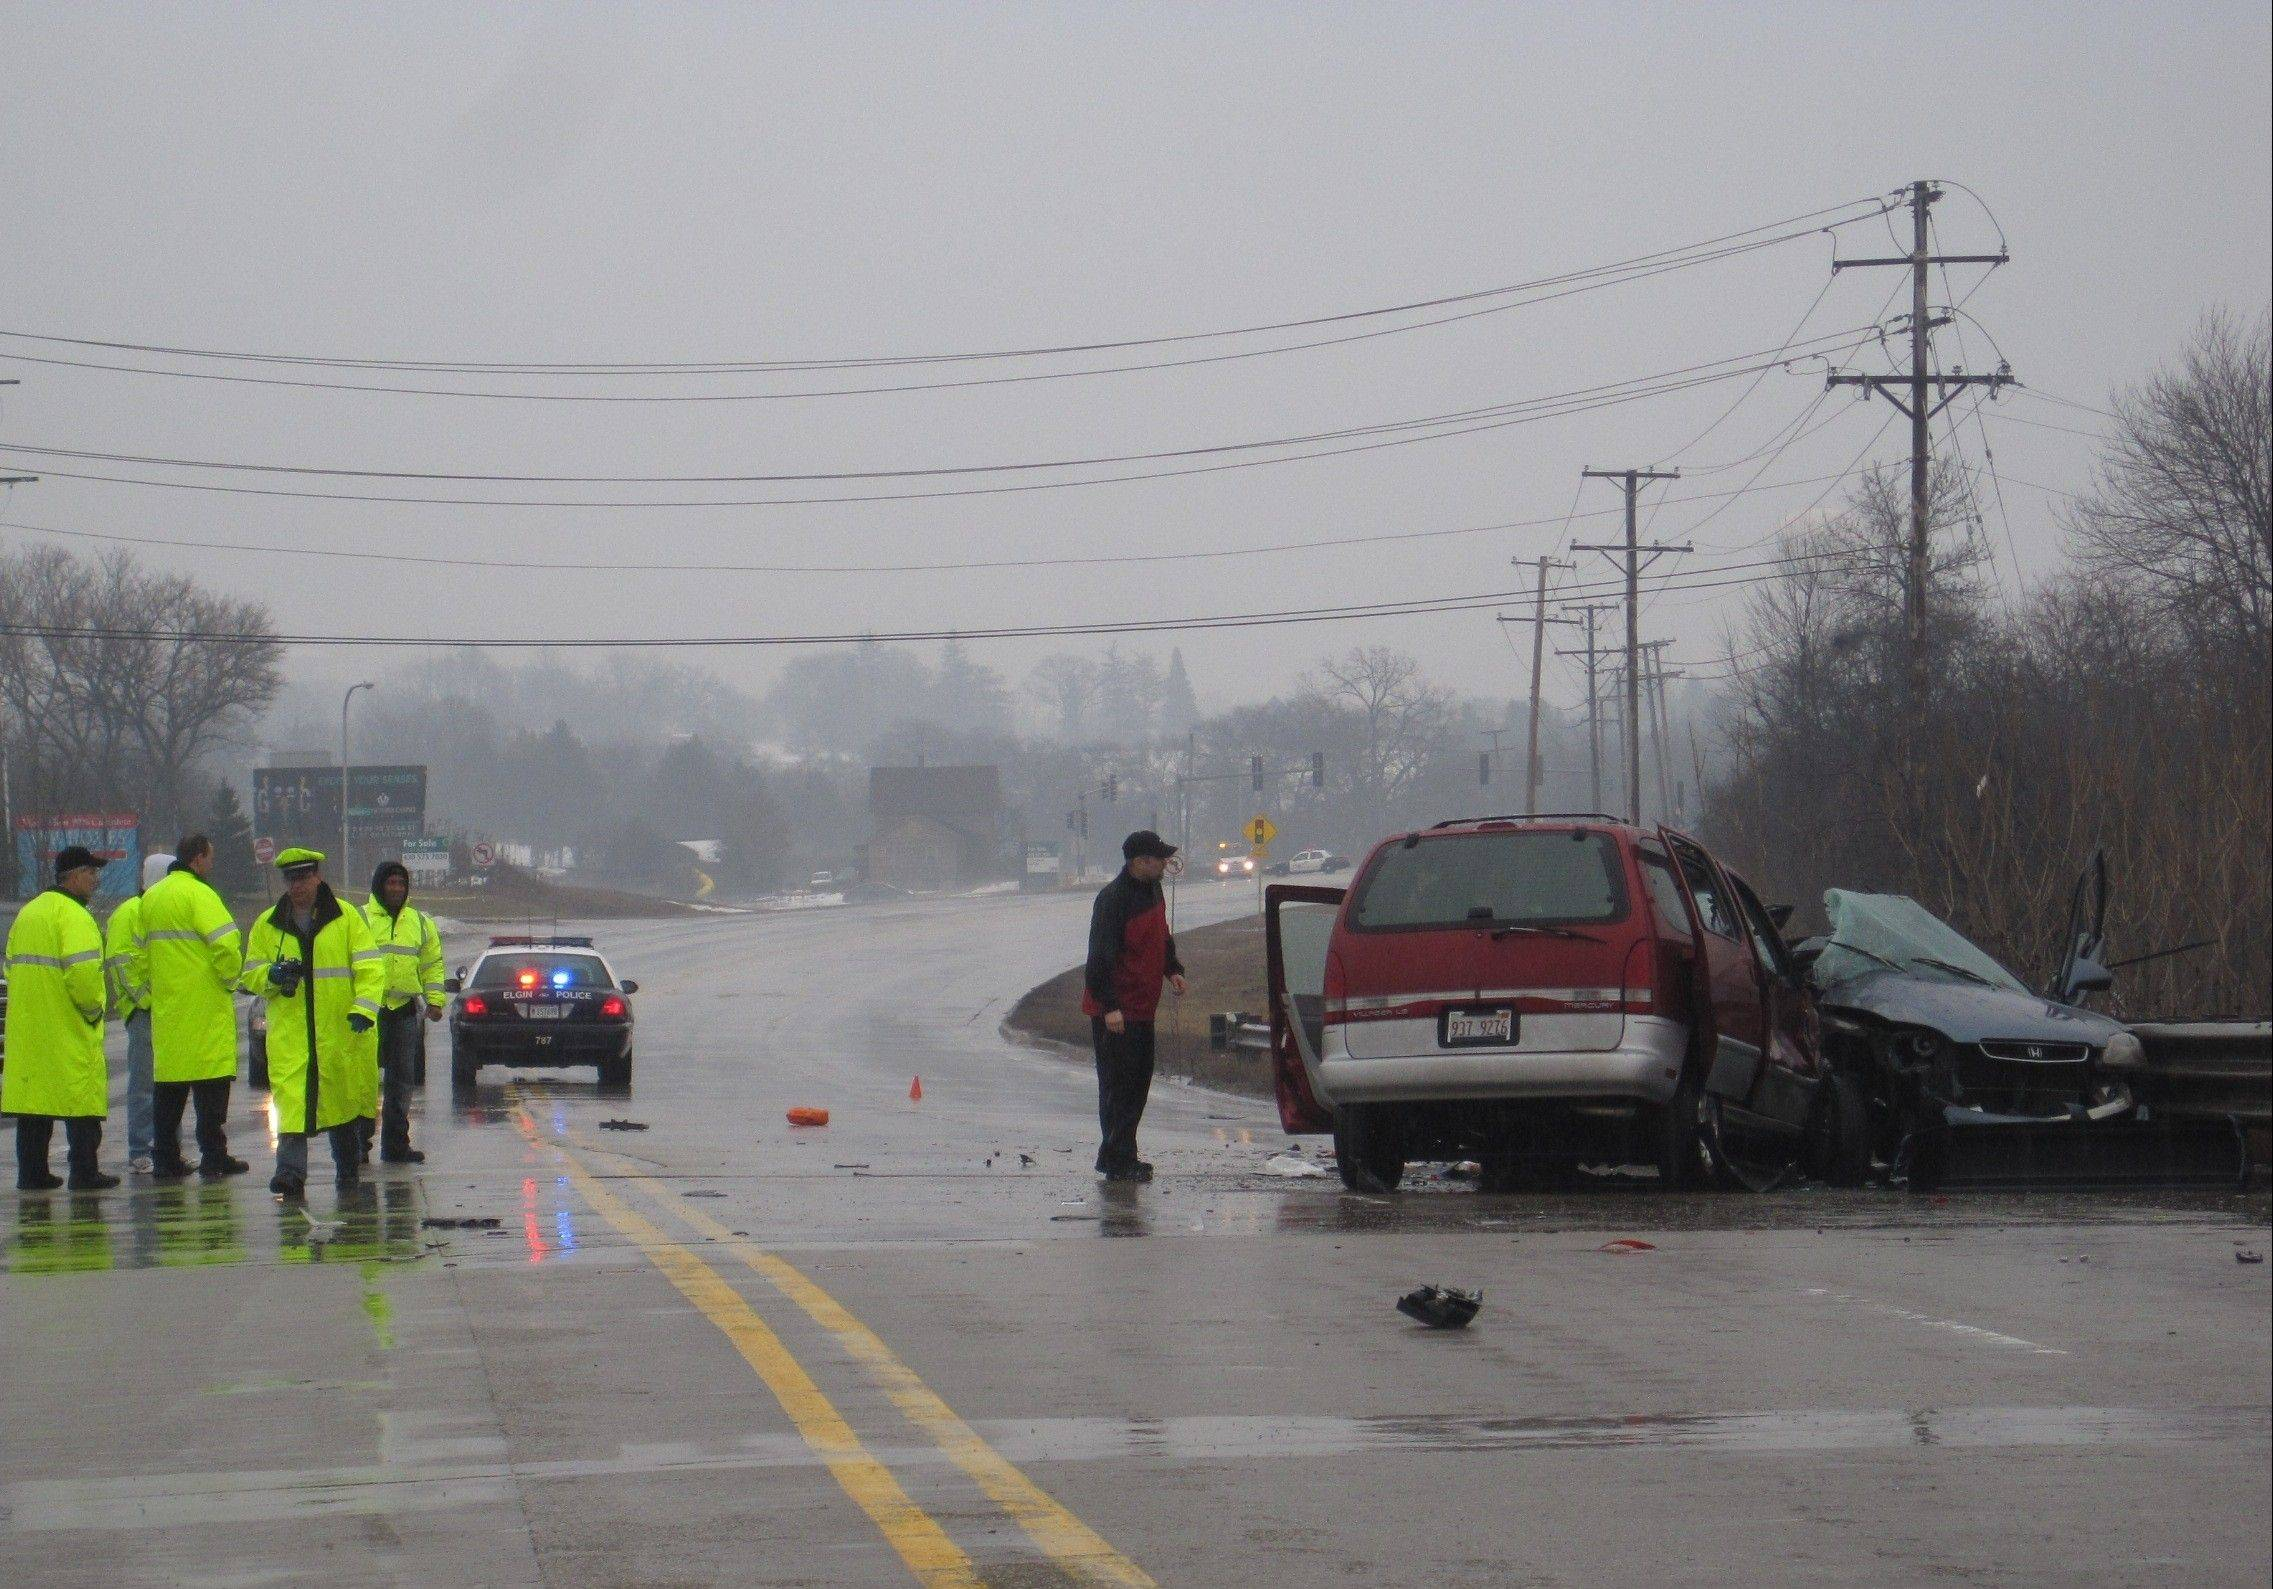 A man was killed and a woman severely injured Sunday afternoon when a car and minivan collided on Route 20 in Elgin. Police said it appears the car veered into oncoming traffic before the fatal crash.